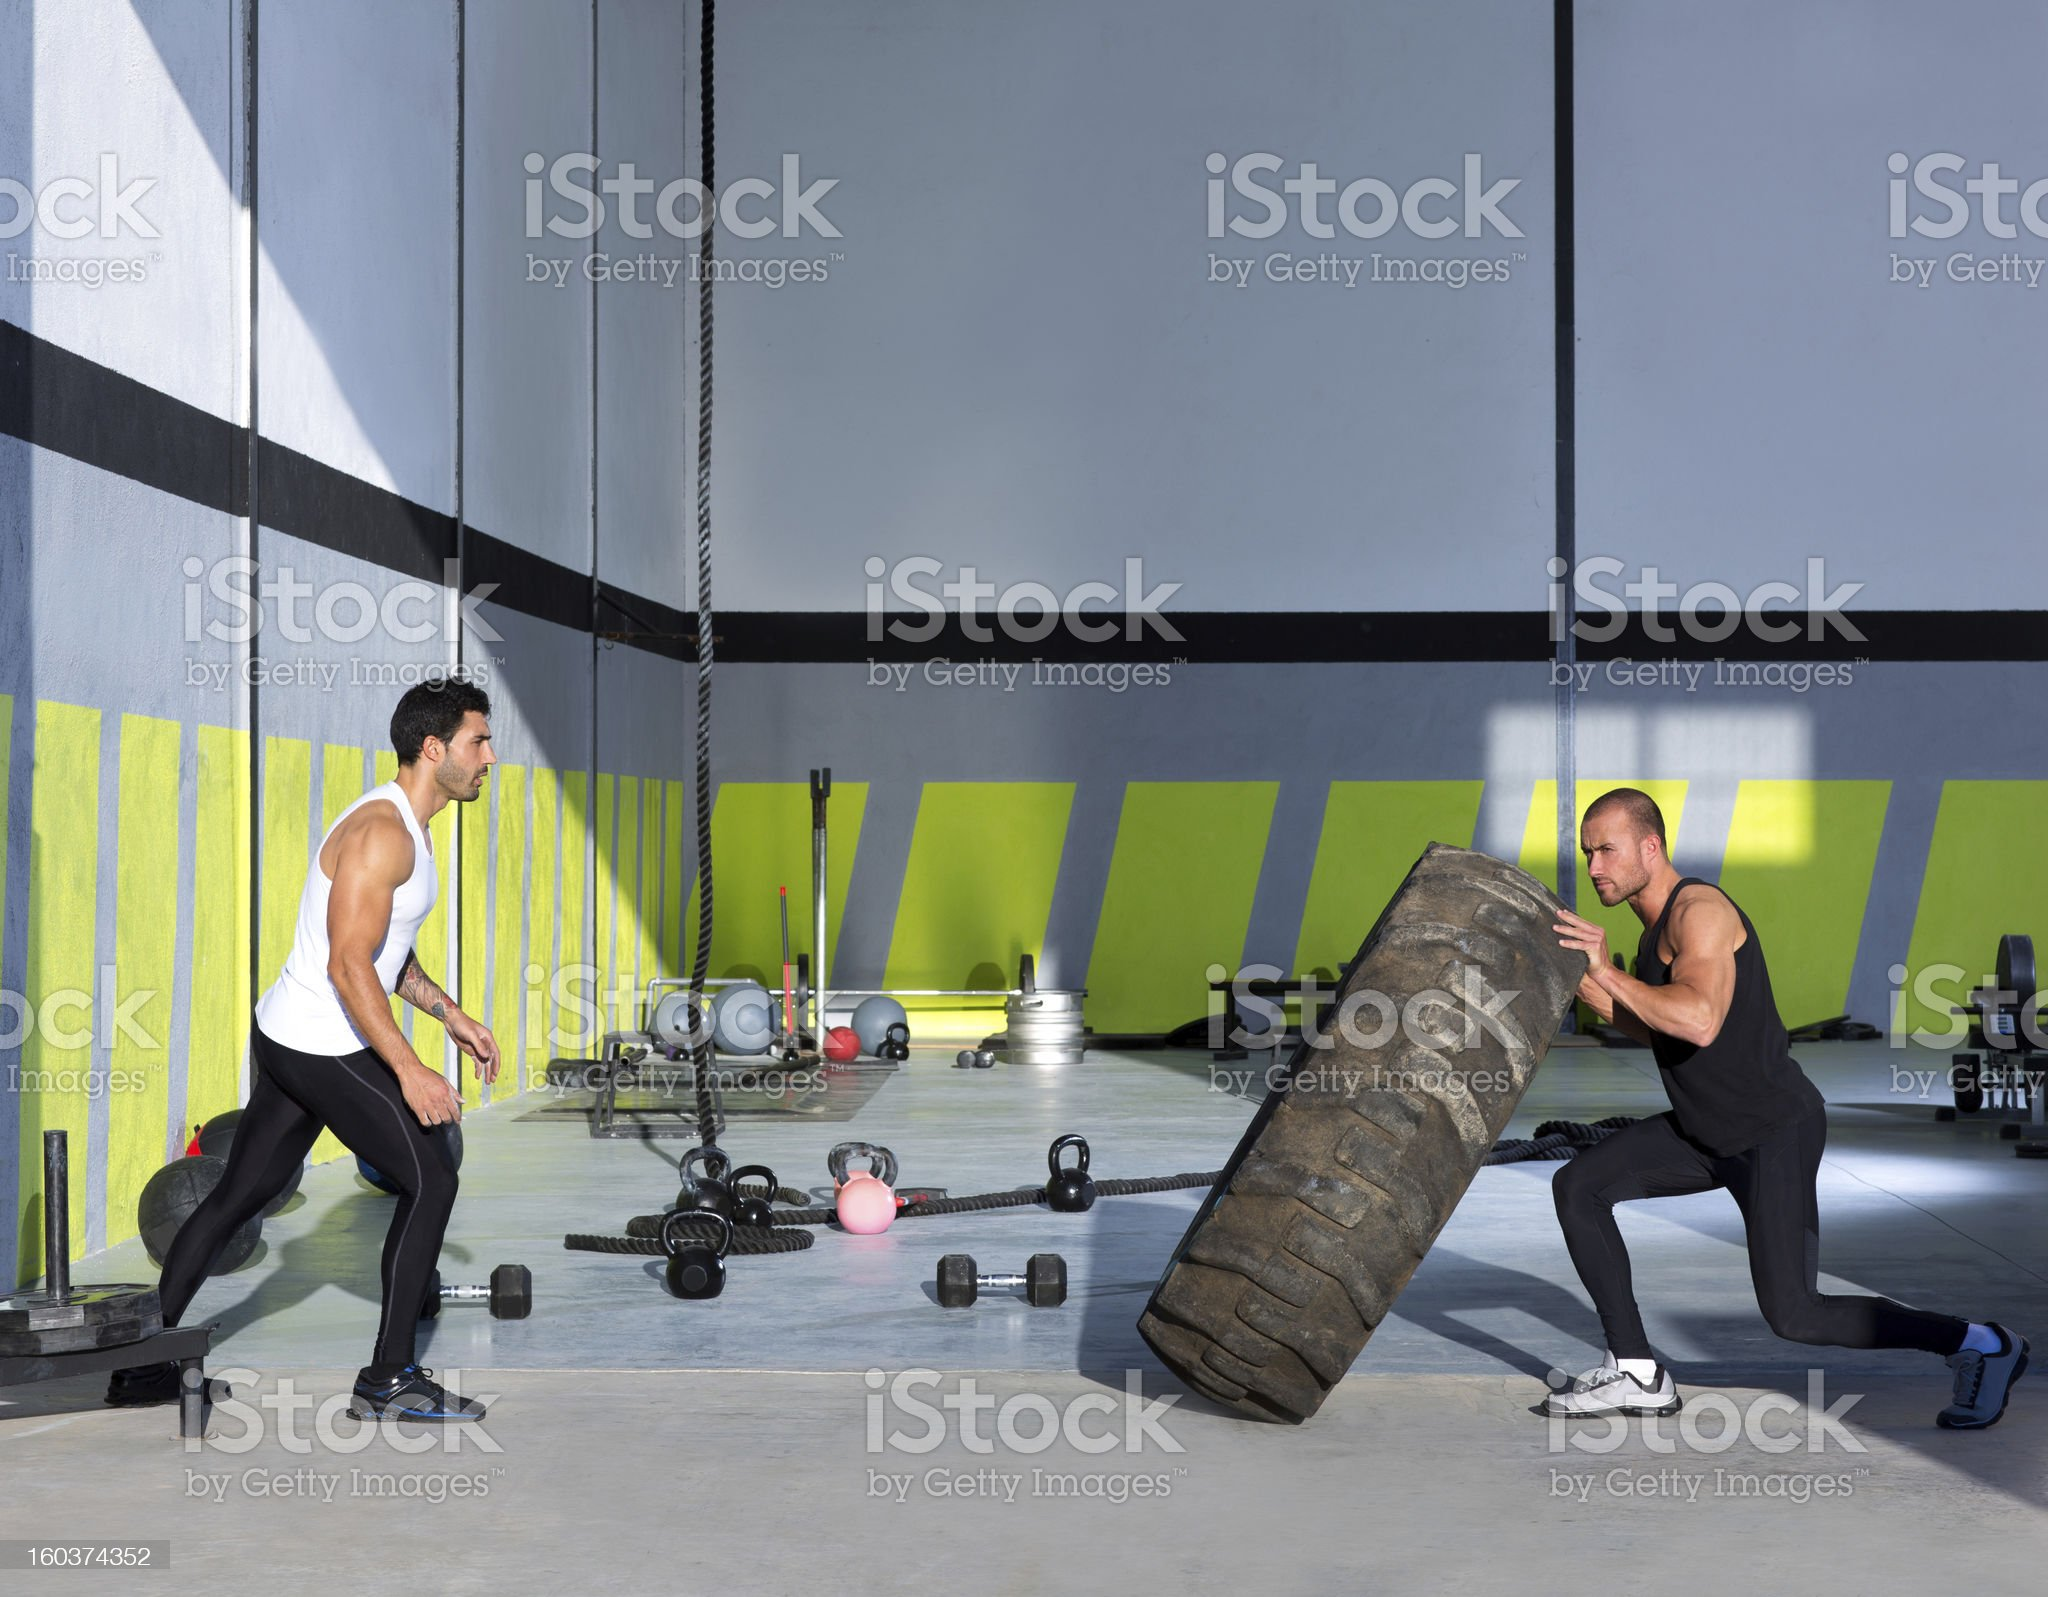 Crossfit flip tires men flipping each other royalty-free stock photo